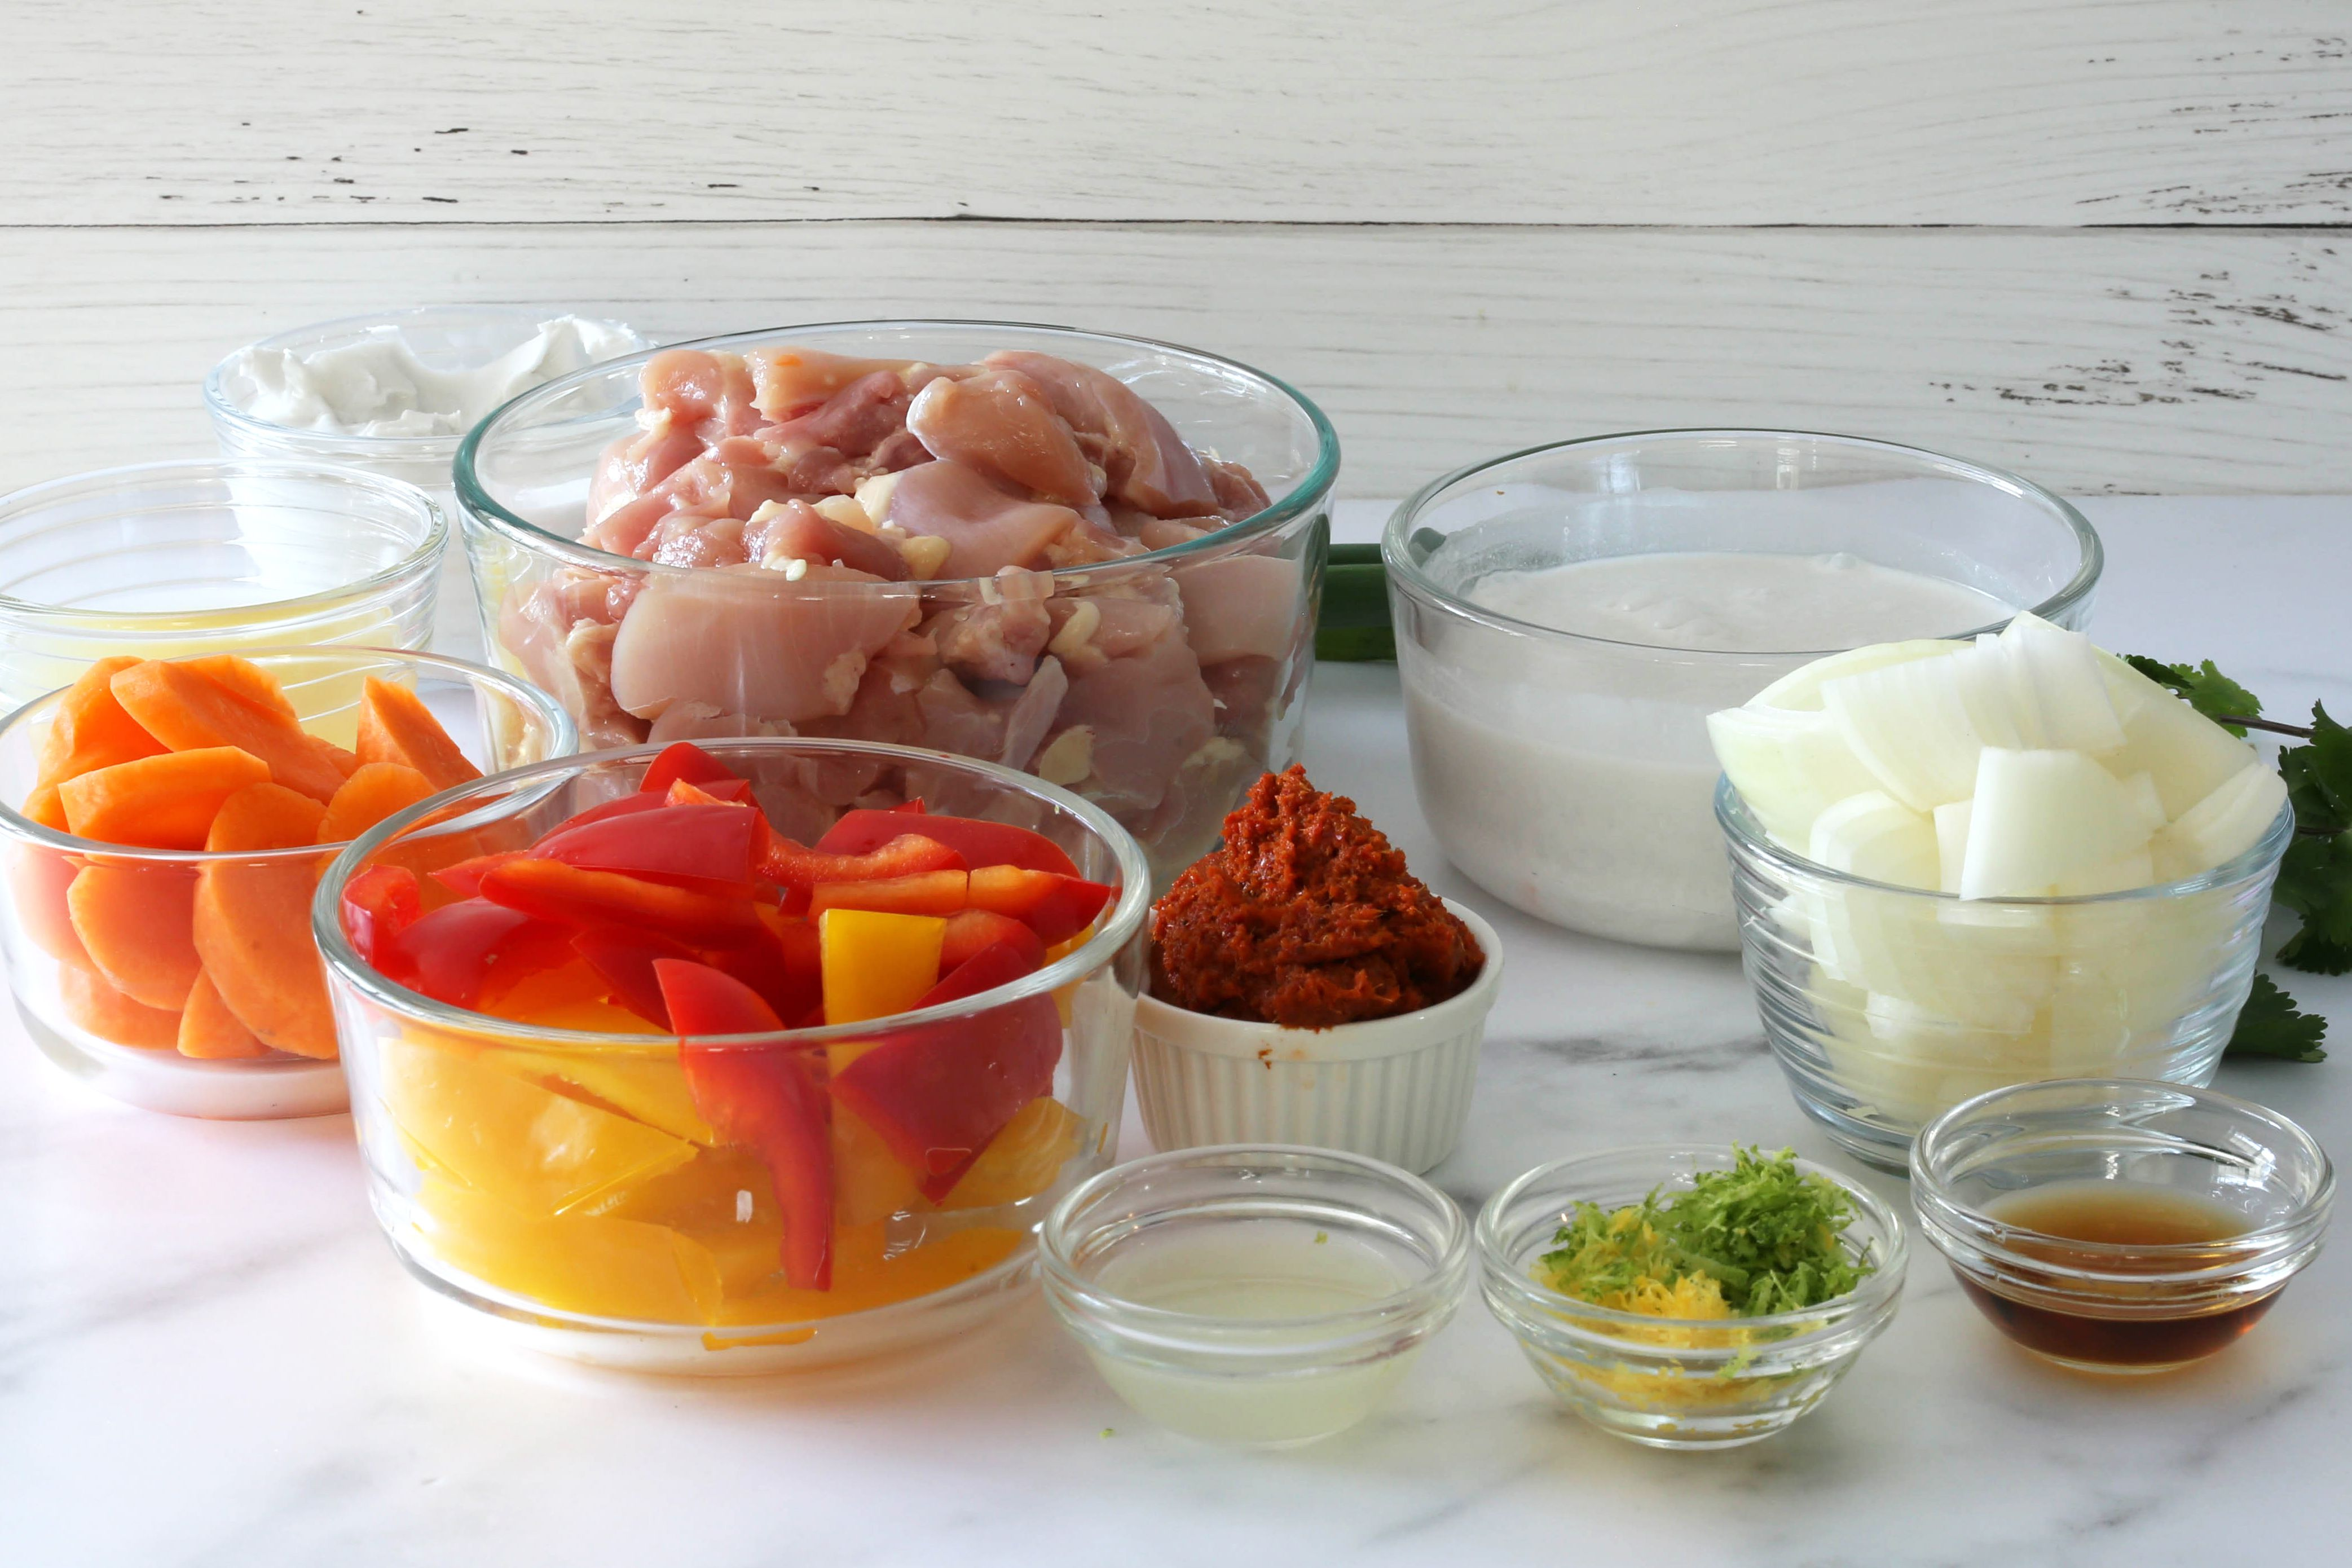 Ingredients for Instant Pot Thai curry with chicken.